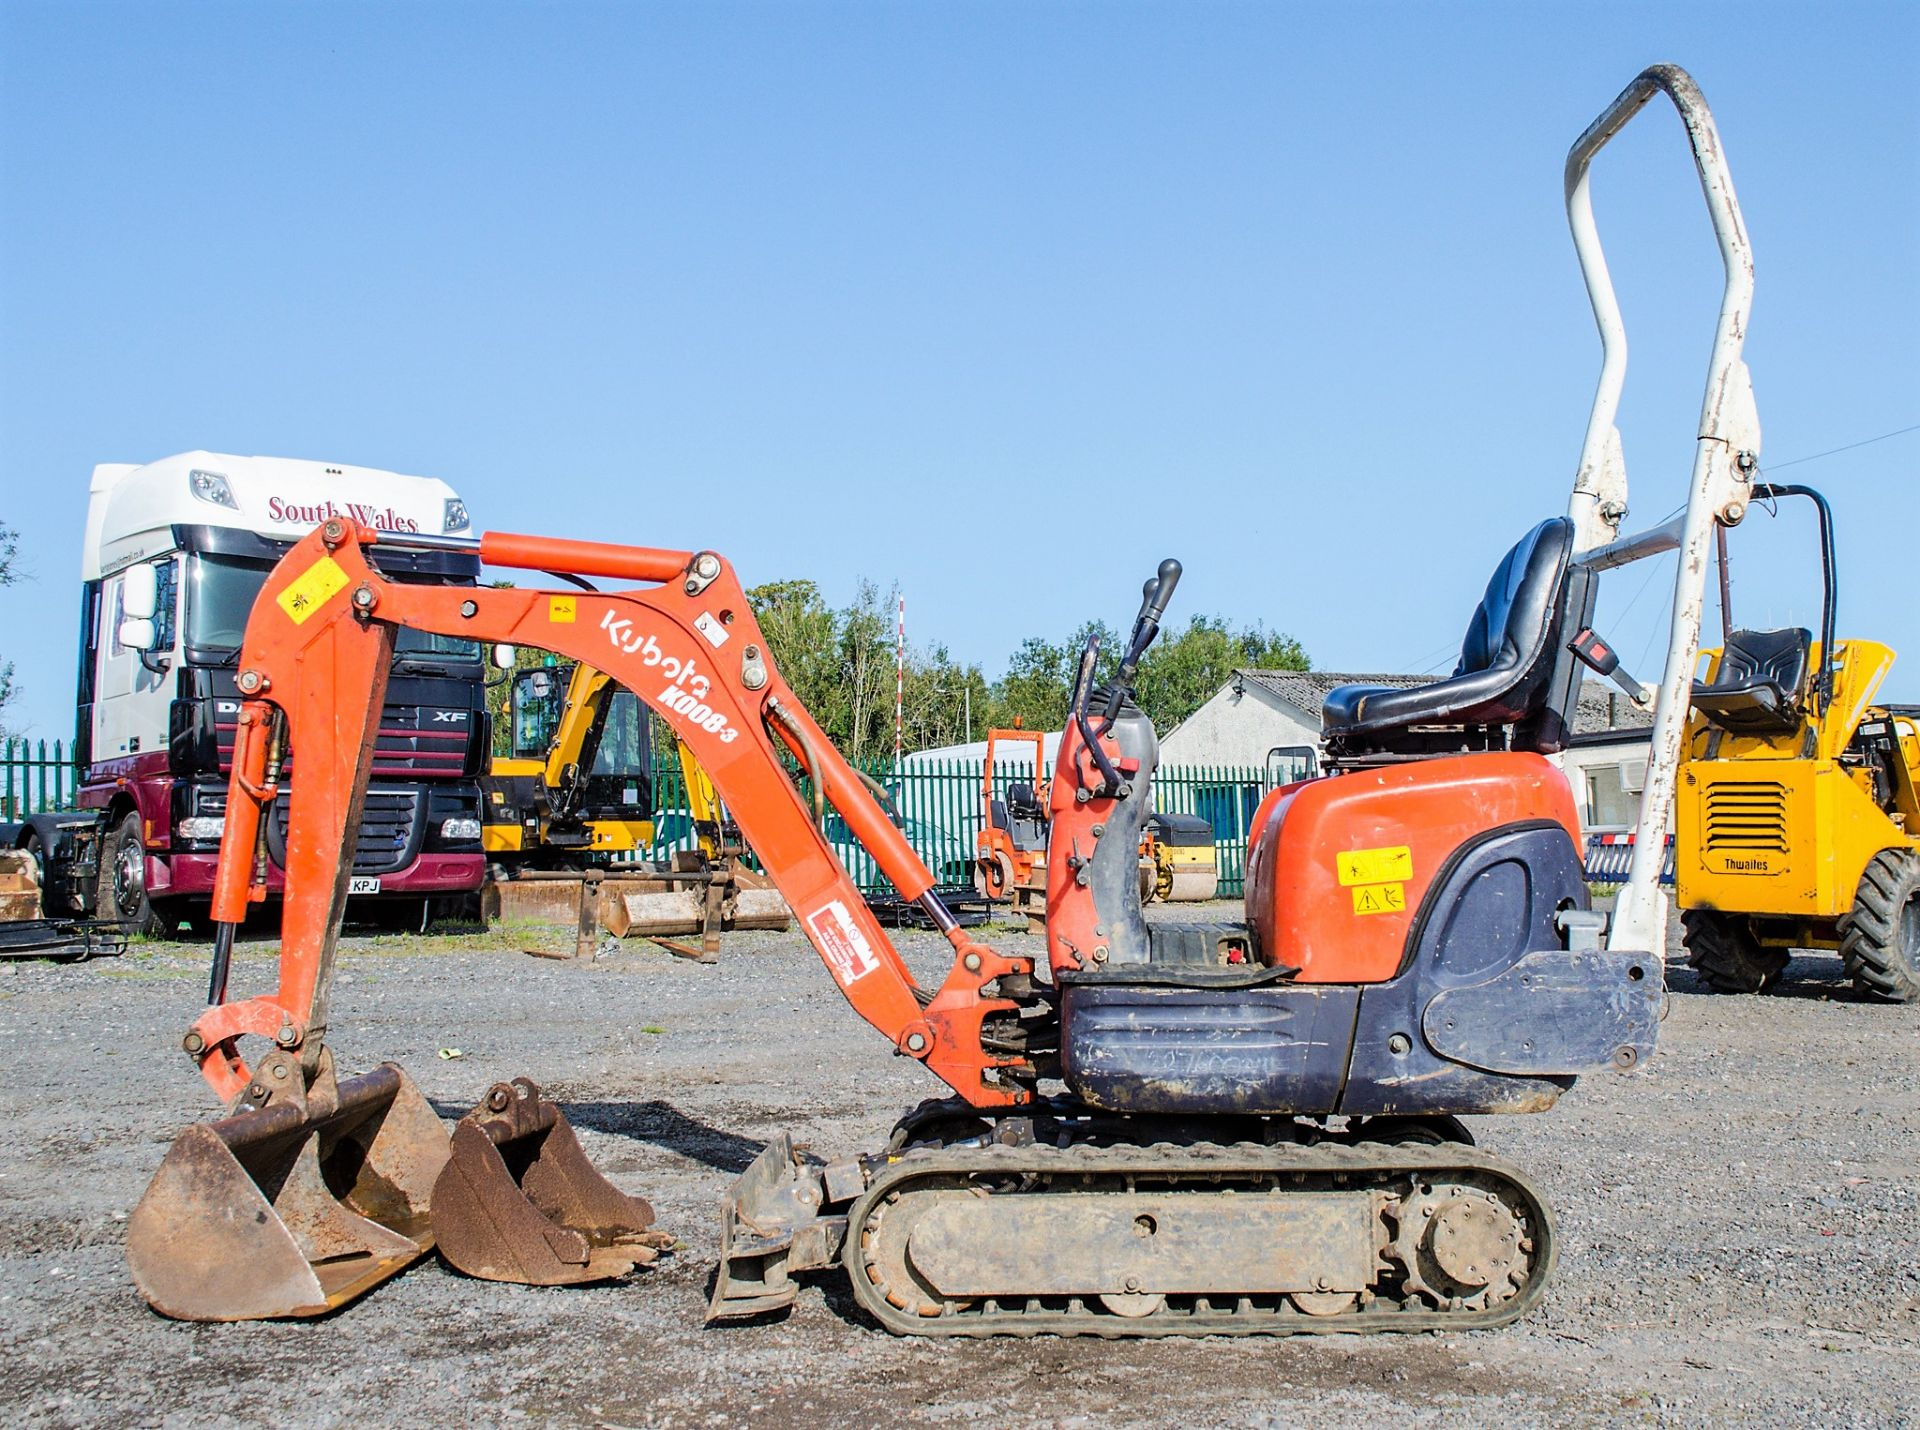 Lot 26 - Kubota KX008-3 0.8 tonne rubber tracked micro excavator Year: 2006 S/N: 13422 Recorded Hours: 1607